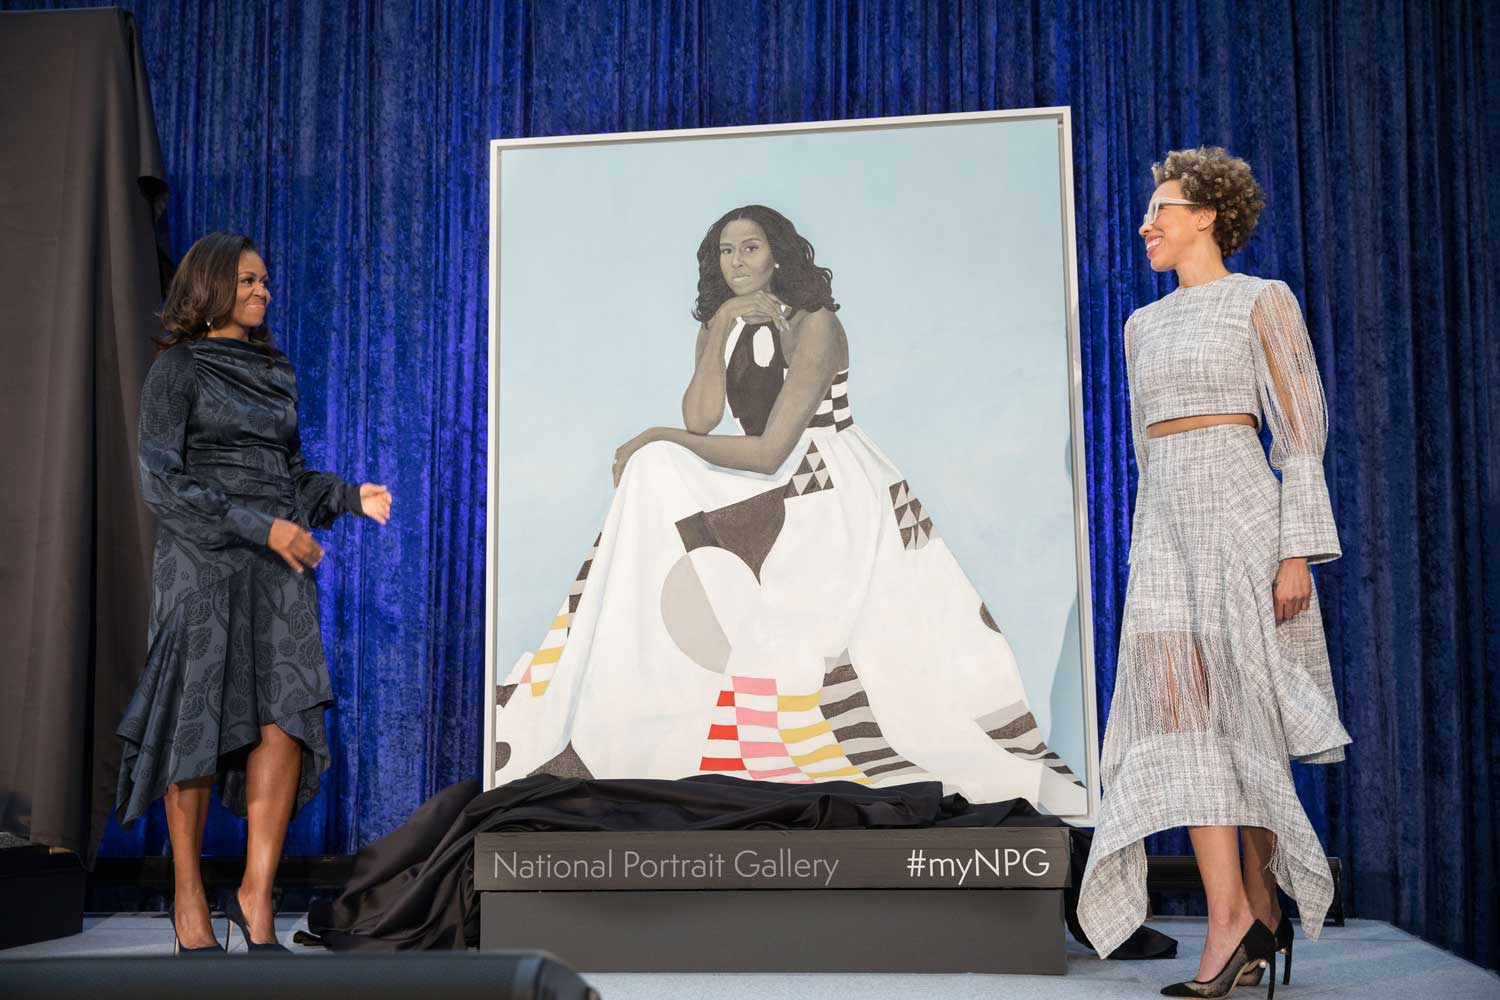 Two women standing on a stage next to a large portrait of a woman